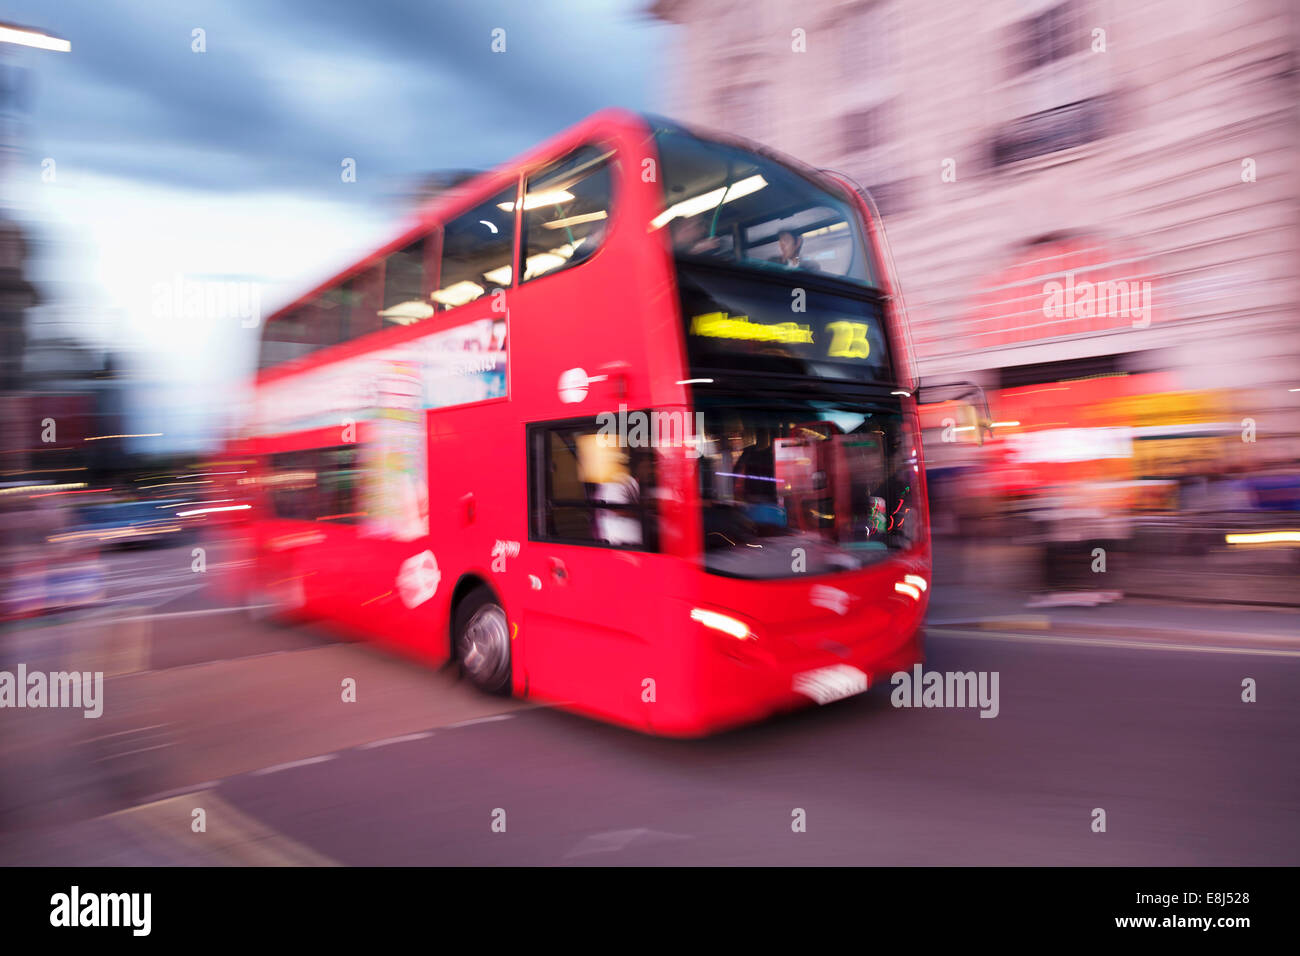 Red double decker bus, motion blur, Piccadilly Circus, London, England, United Kingdom - Stock Image